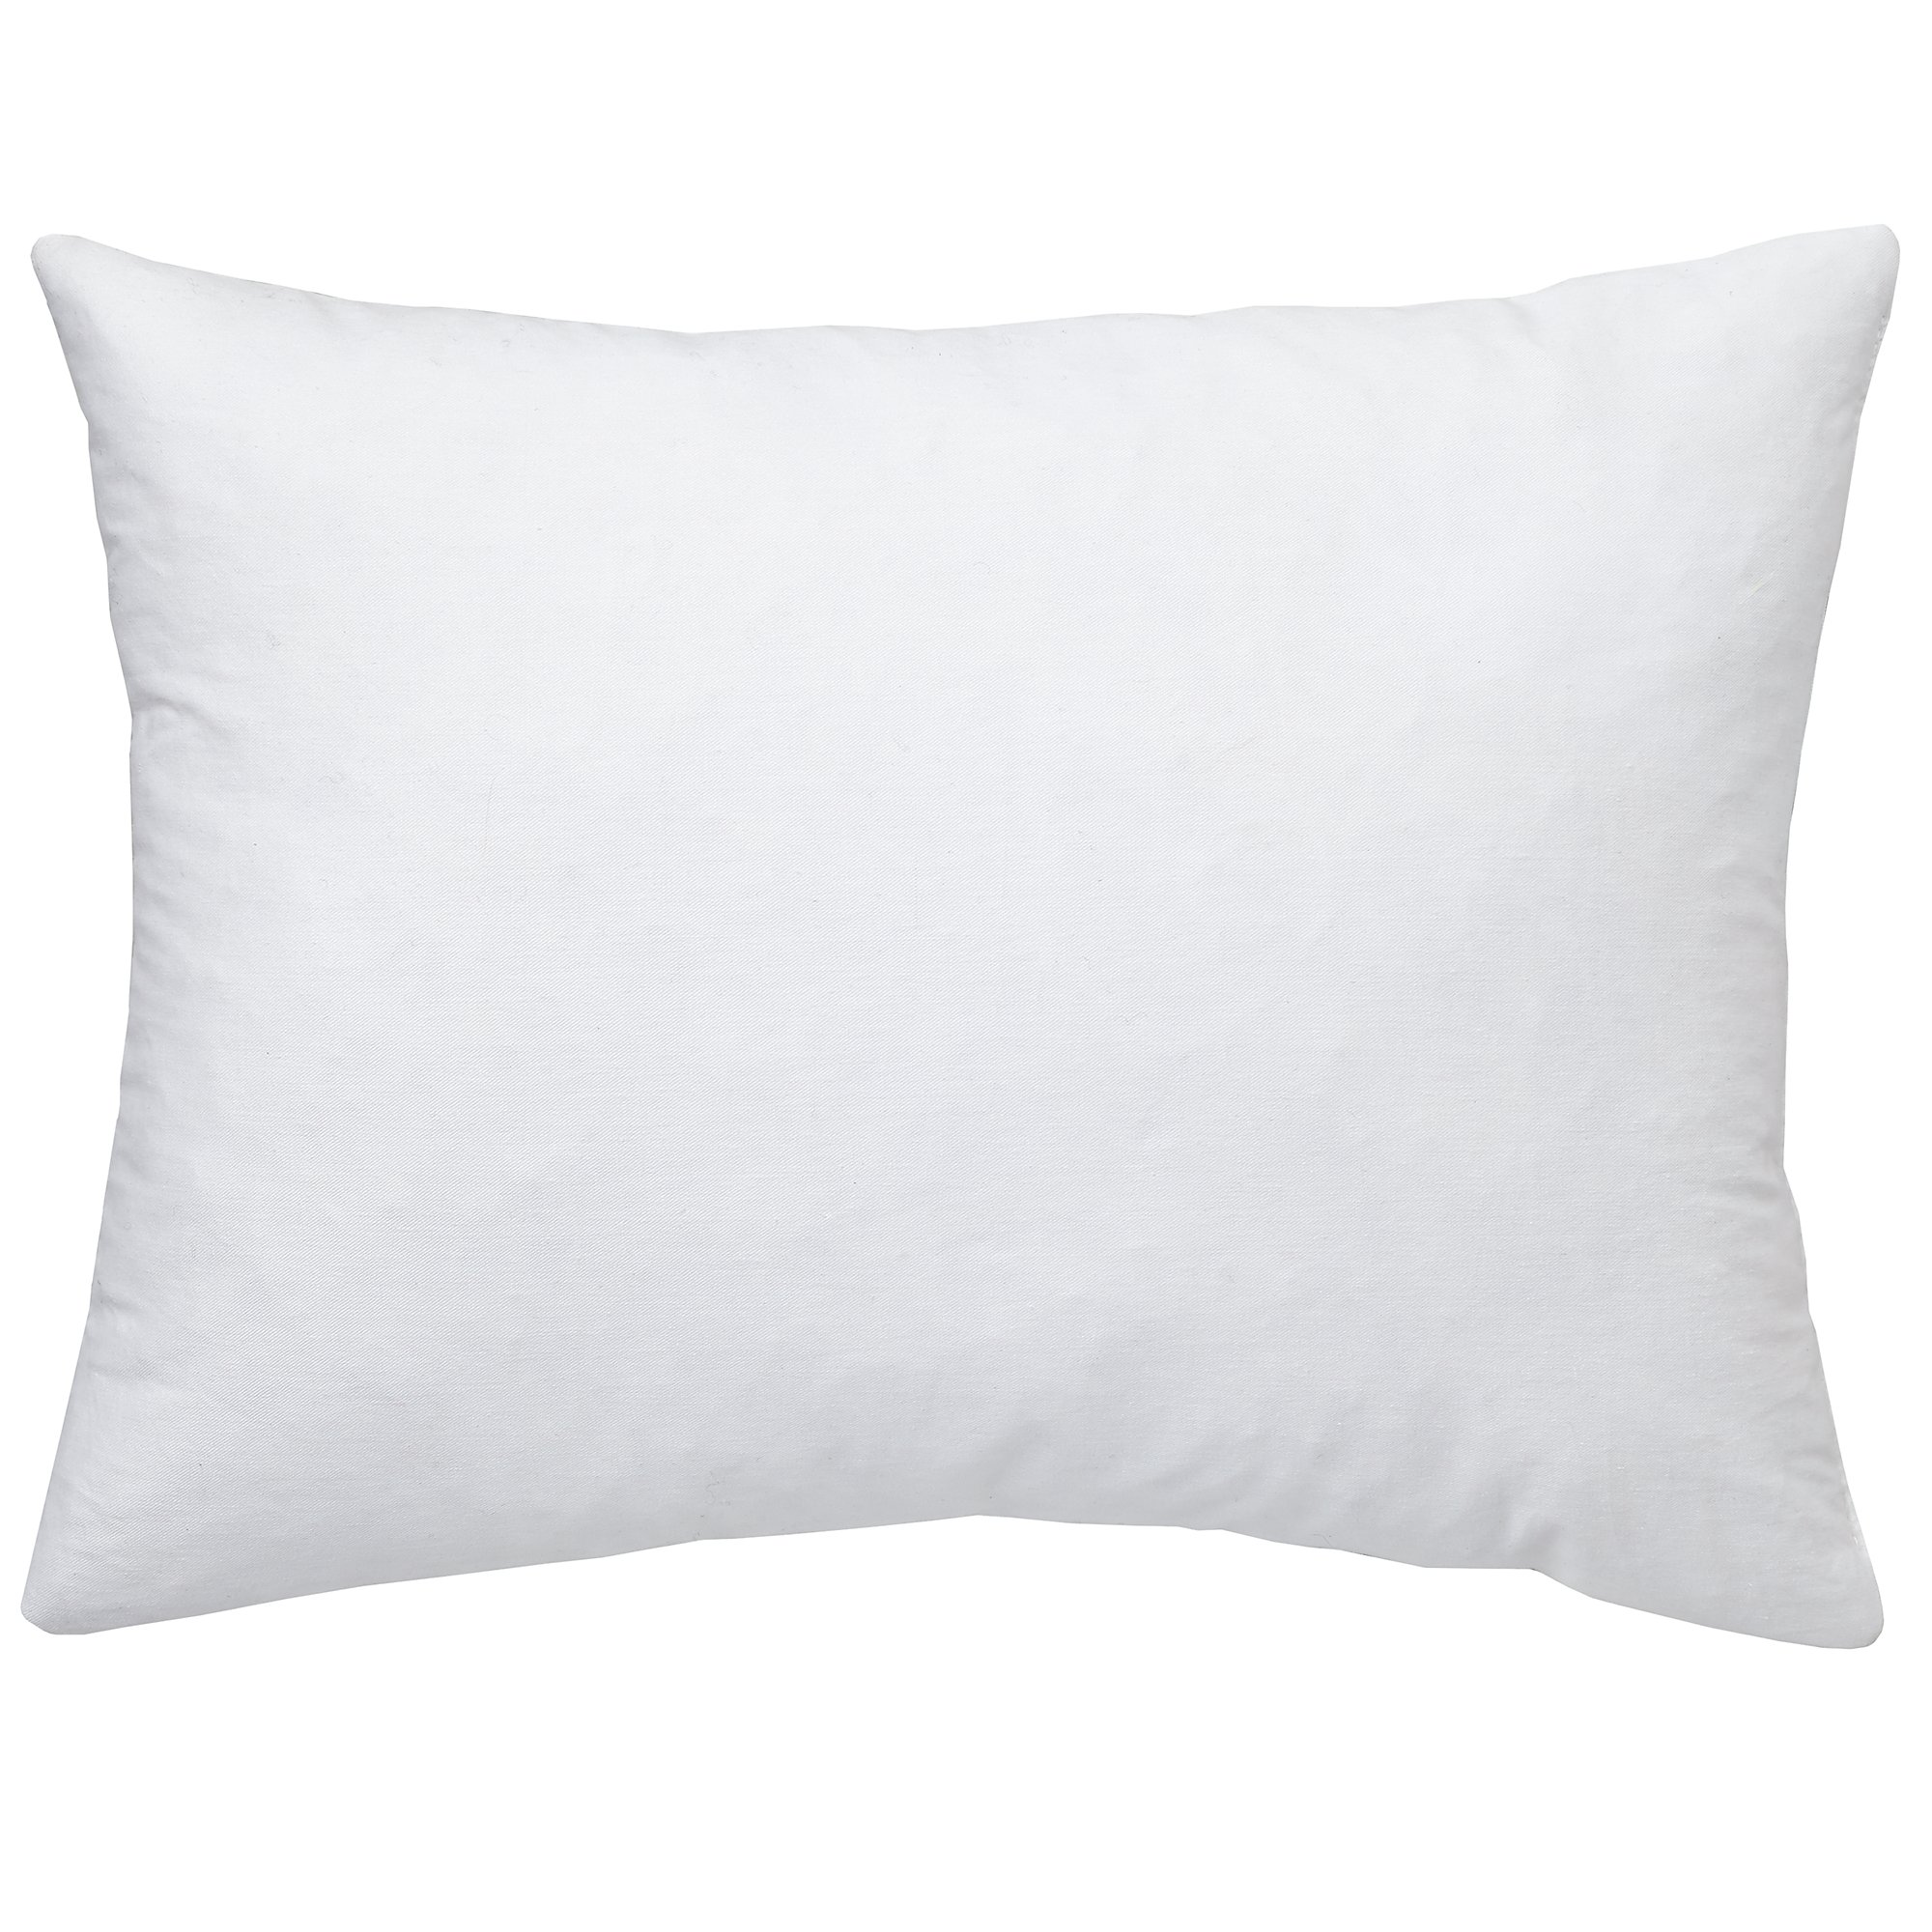 Baby / Toddler Pillow